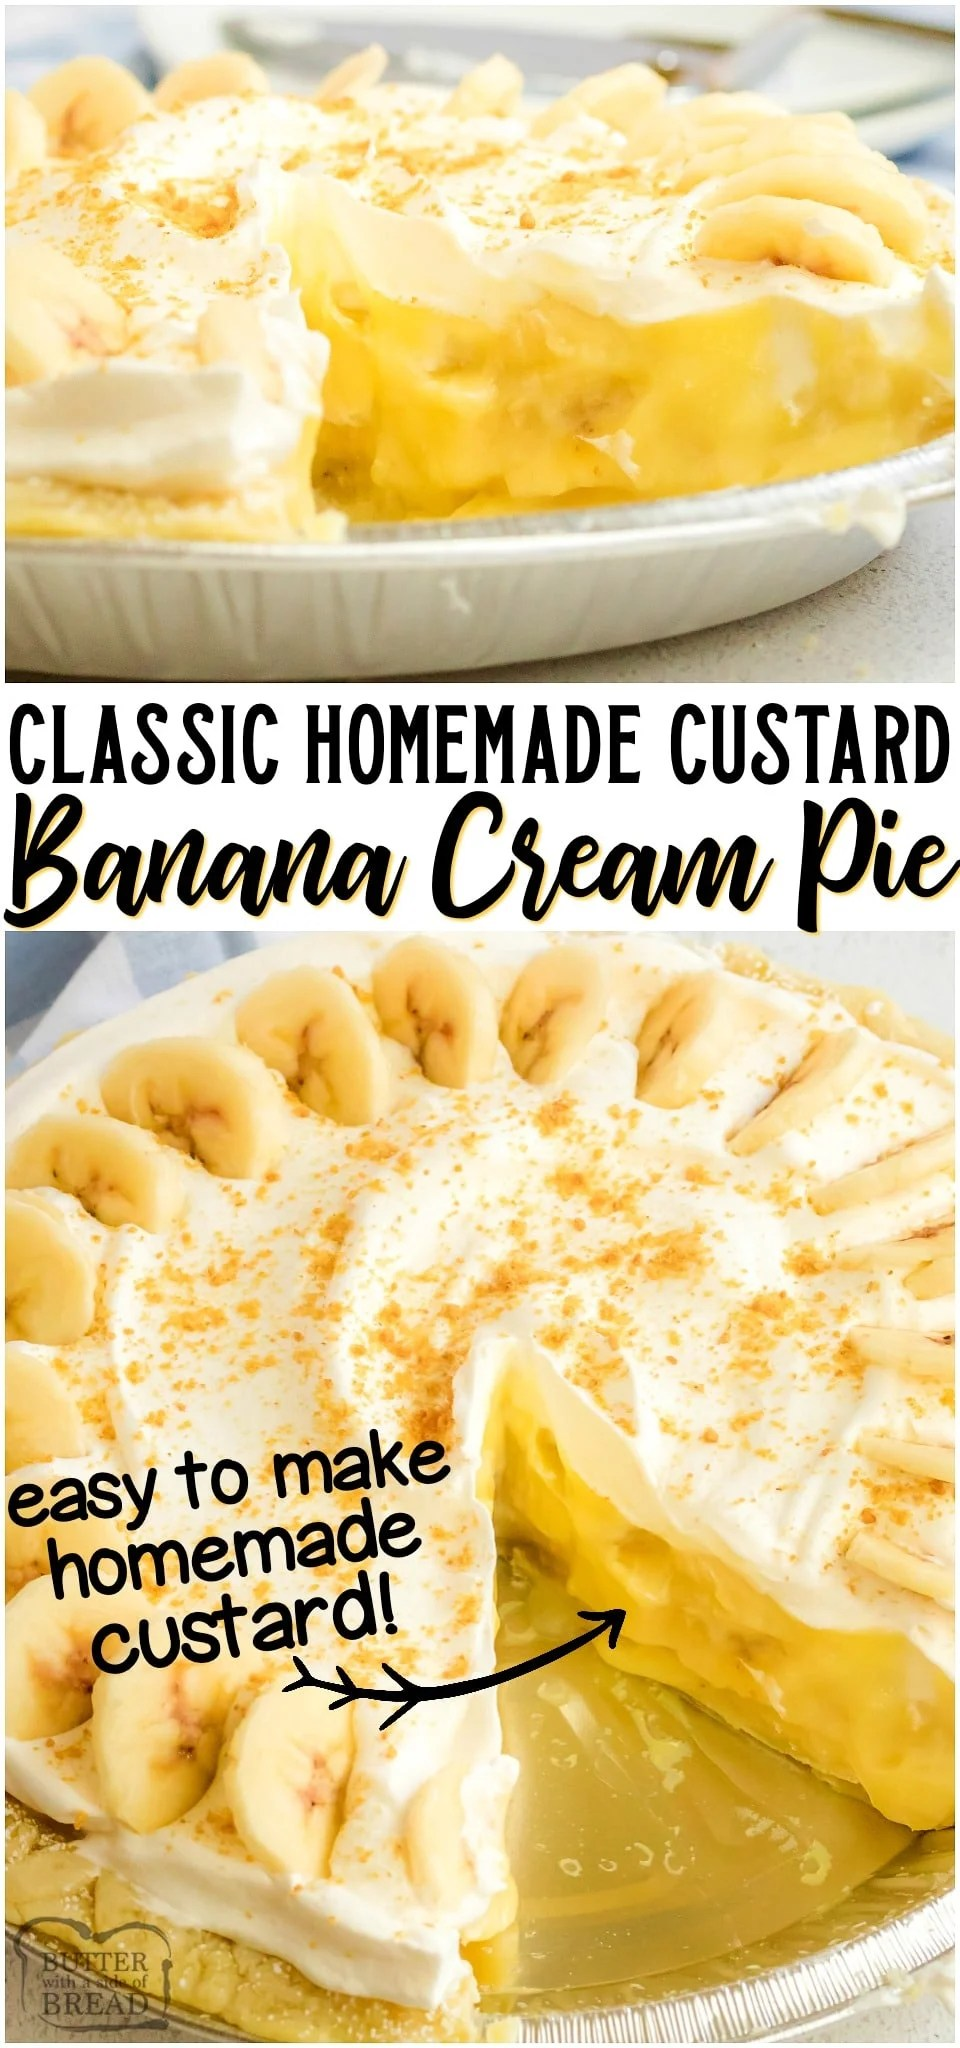 Homemade Banana Cream Pie is a classic! Creamy custard filling with sliced bananas all inside a flaky pie crust. Making a Banana Cream Pie recipe from scratch is easier than you think! #pie #banana #bananacream #dessert #baking #holidays #creampie #recipe from BUTTER WITH A SIDE OF BREAD